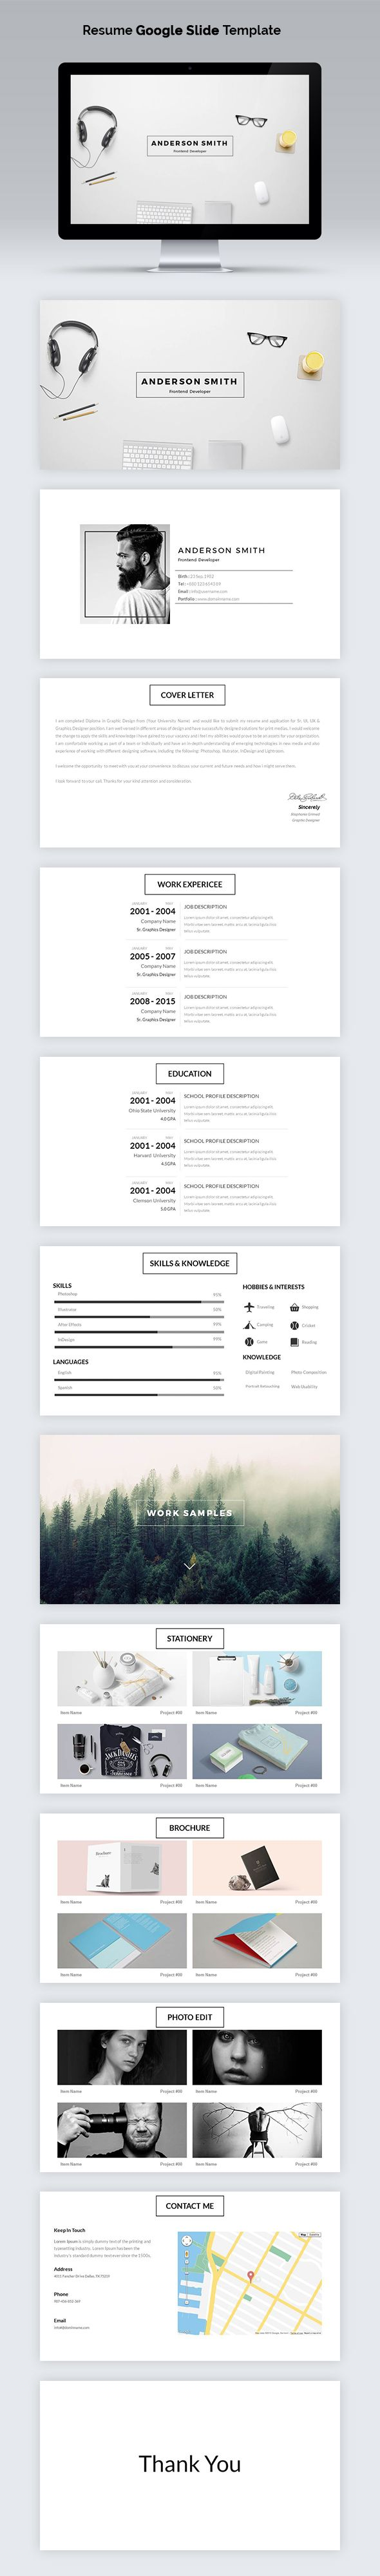 Resume Google Slide Template  Presentation Templates Ppt Design